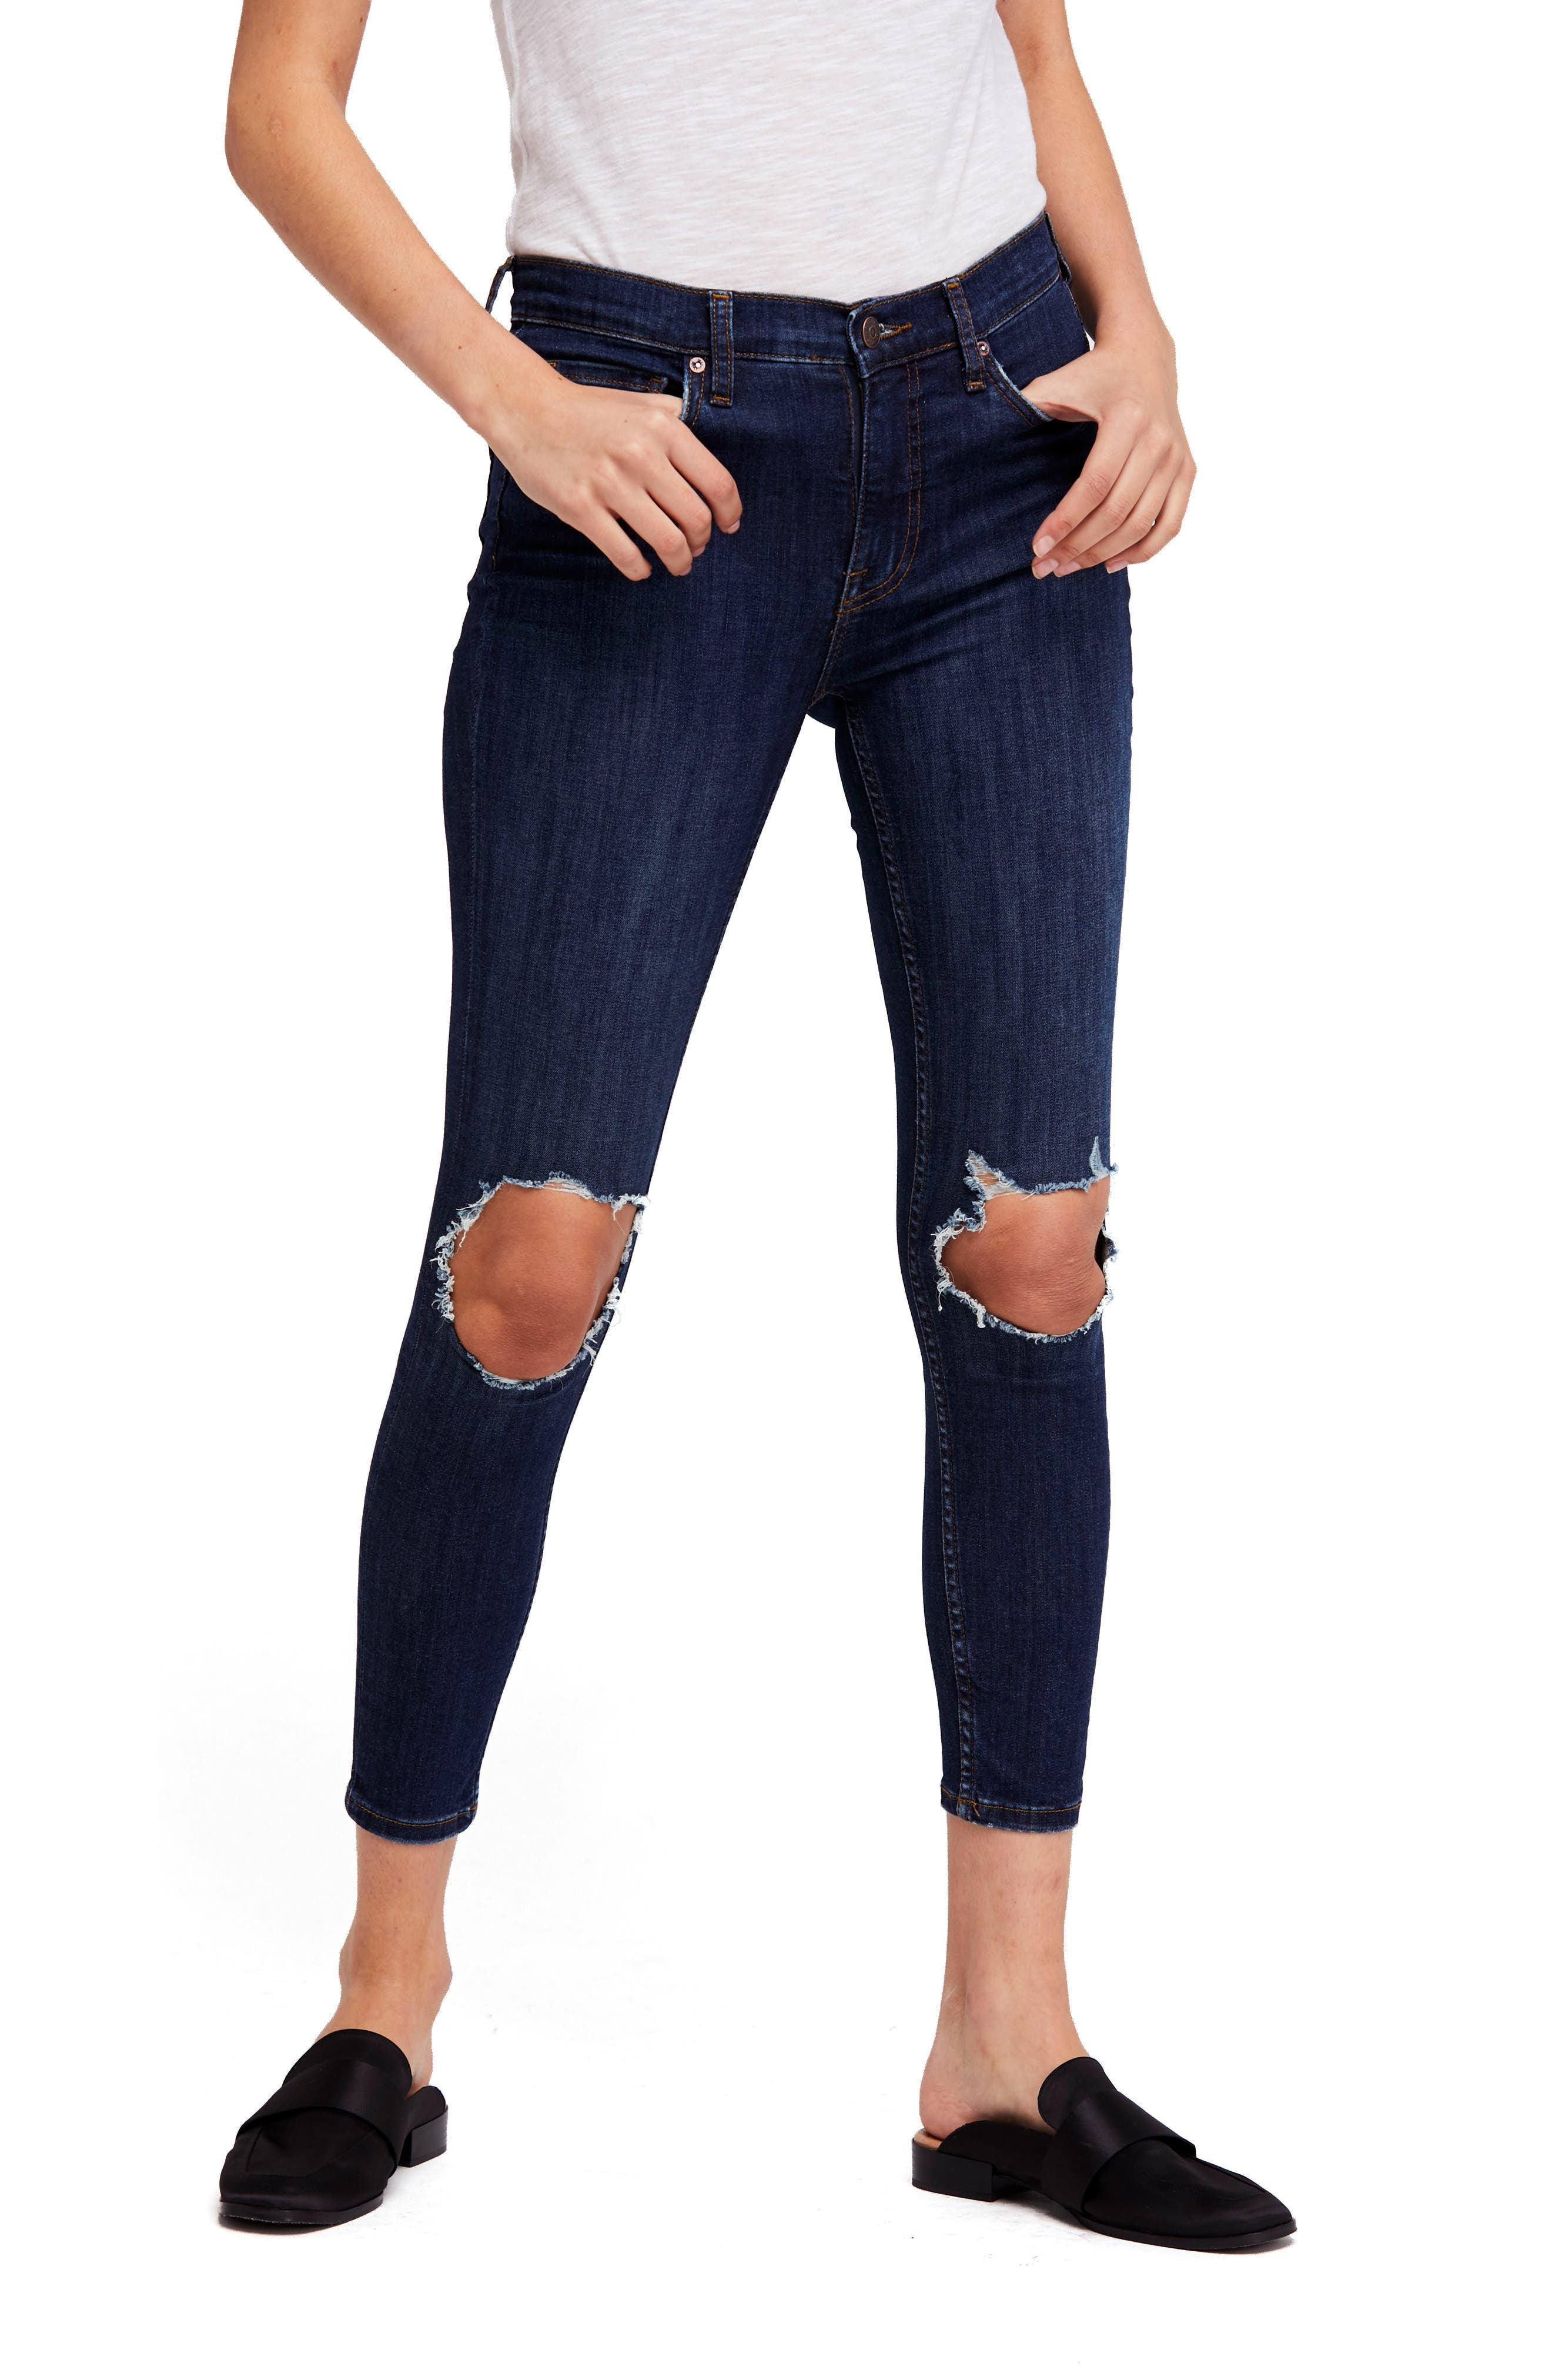 FREE PEOPLE, We the Free by Free People High Waist Ankle Skinny Jeans, Main thumbnail 1, color, DARK BLUE